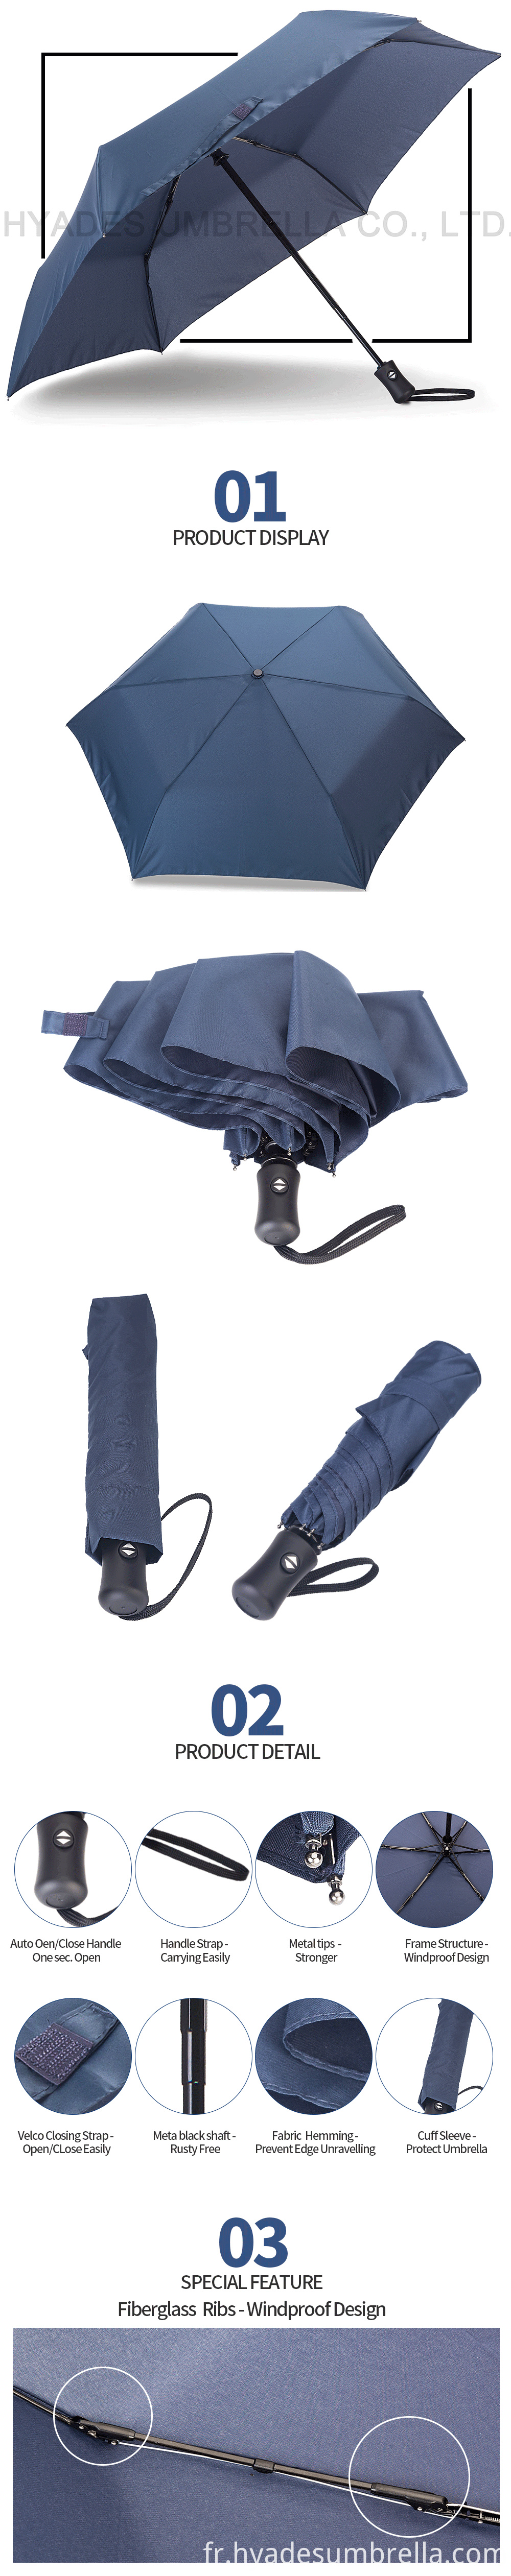 Navy auto open and close umbrella